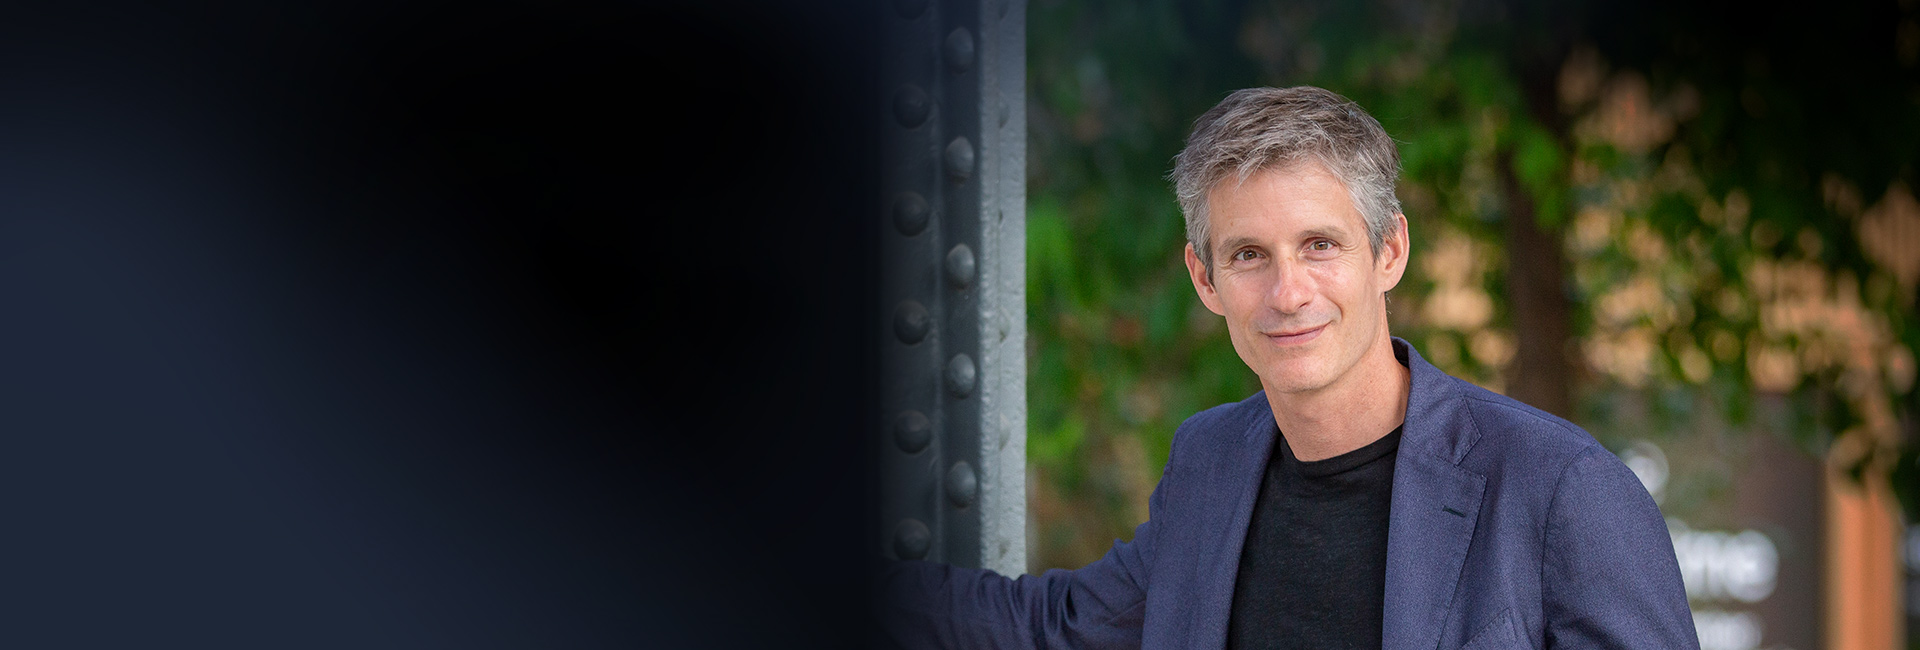 Guillaume Boutin: CEO of the Proximus Group, Chief Enterprise Market Officer ad interim